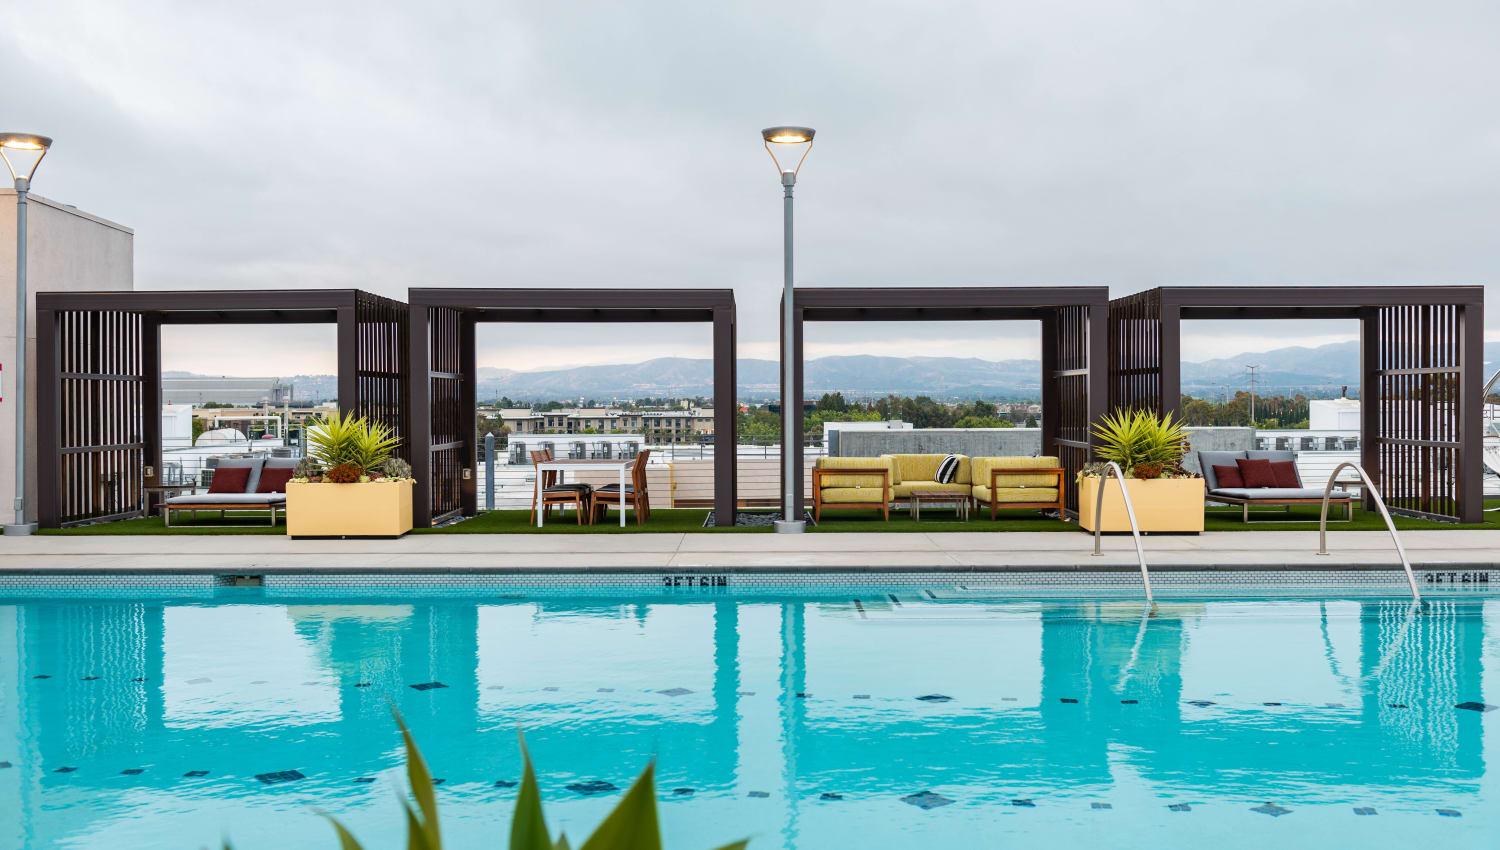 Private cabanas next to the swimming pool at Fusion Apartments in Irvine, California